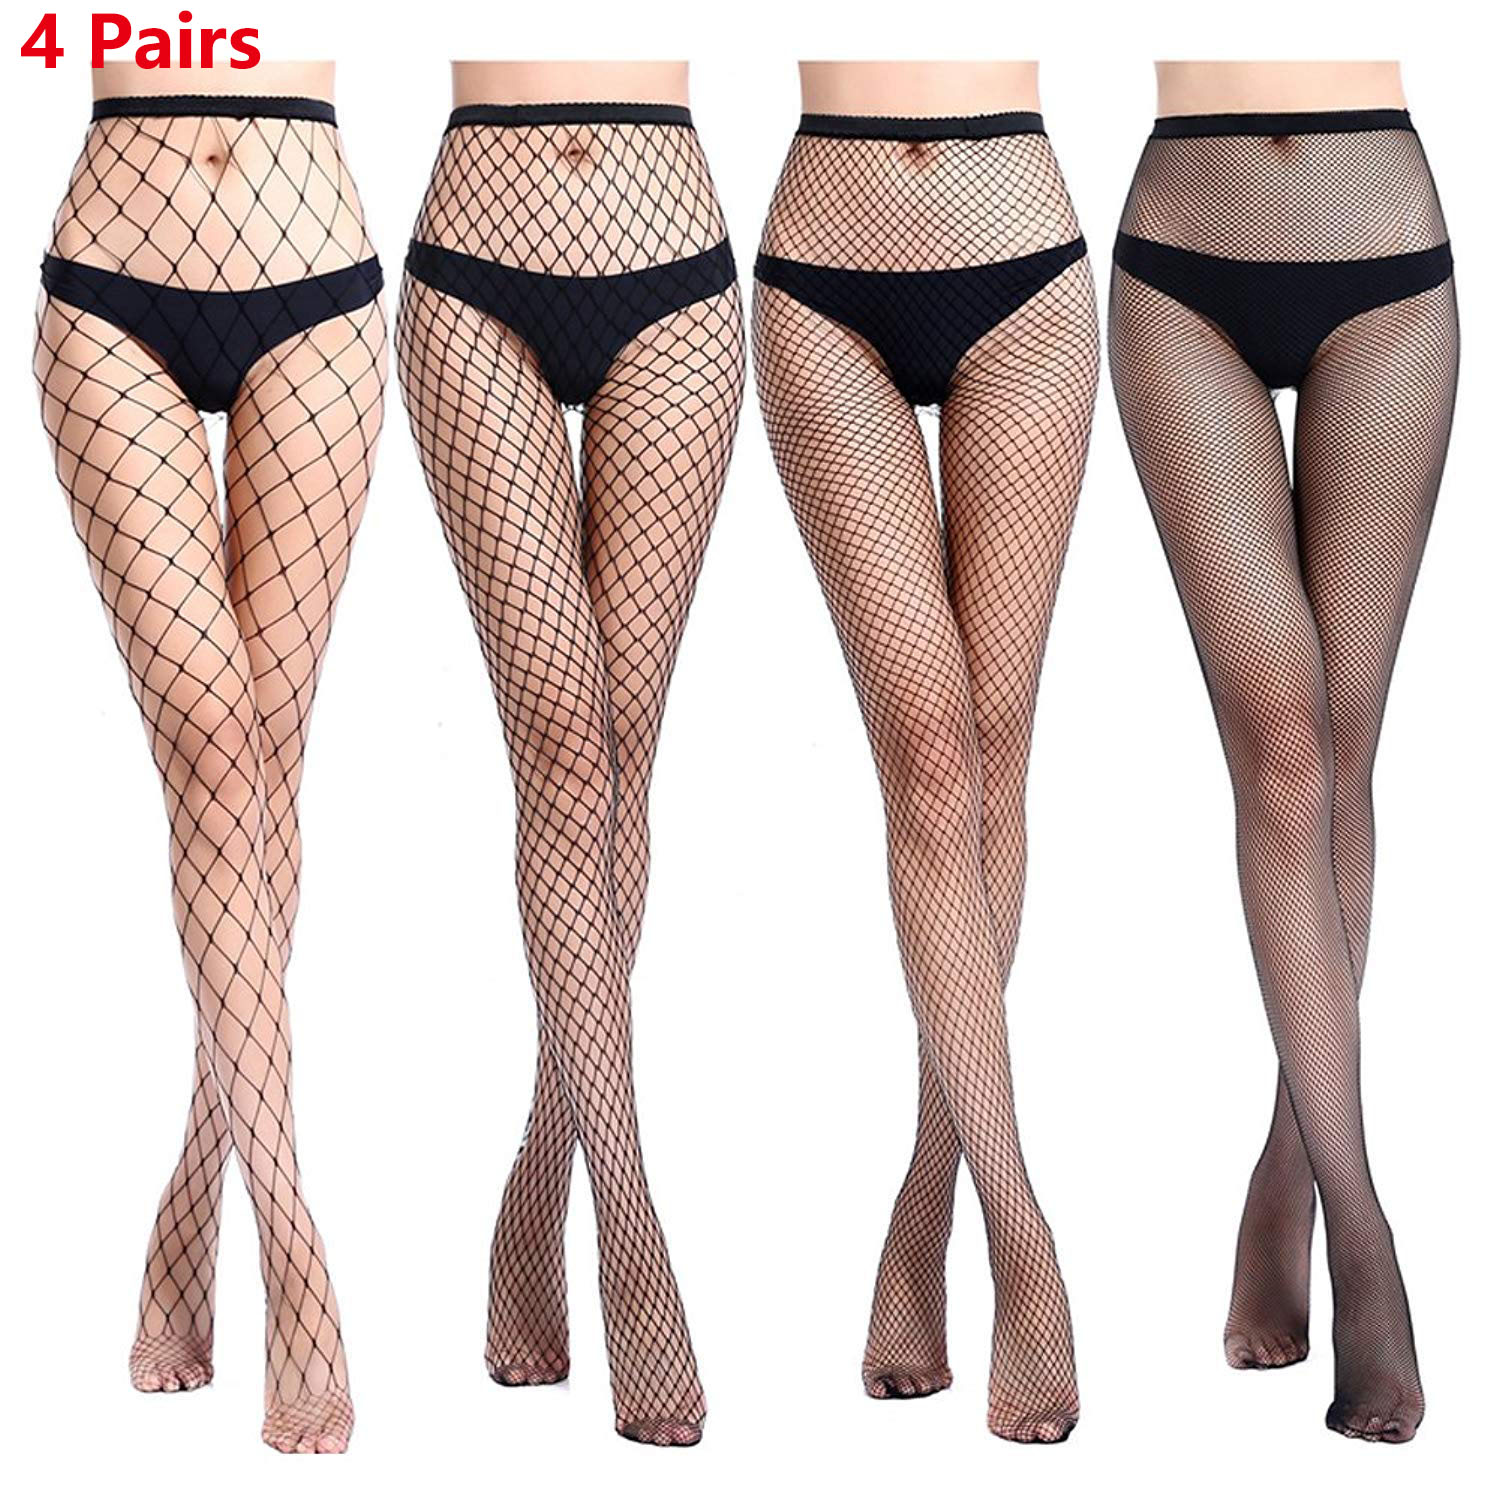 de18e7116f971 Women's Fishnet Stocking Sexy Cross Tights Seamless Nylon Large Mesh Hollow  Out